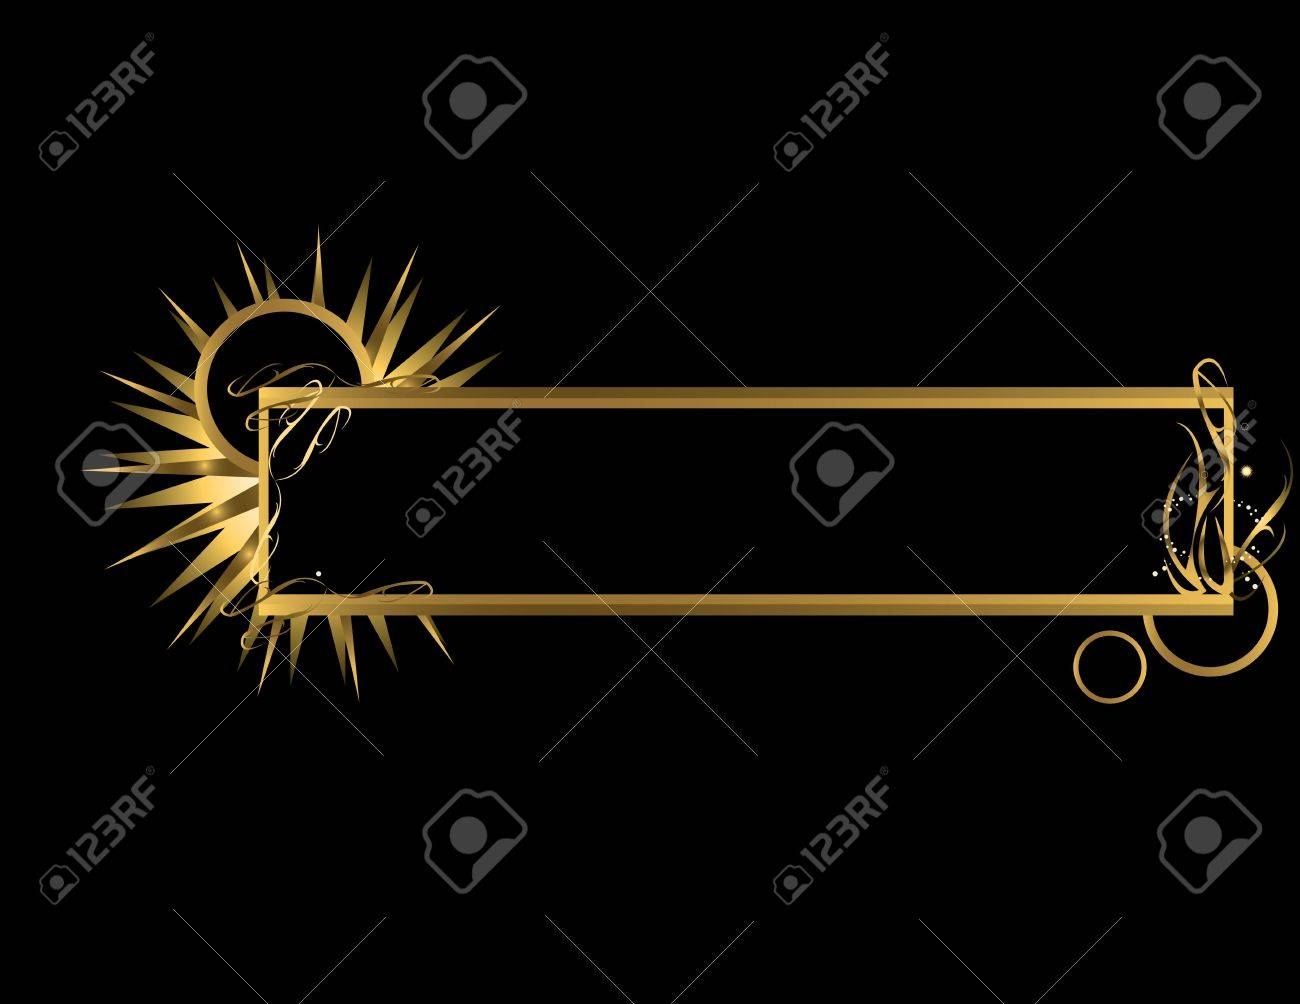 Gold abstract banner on a black background - 3853185